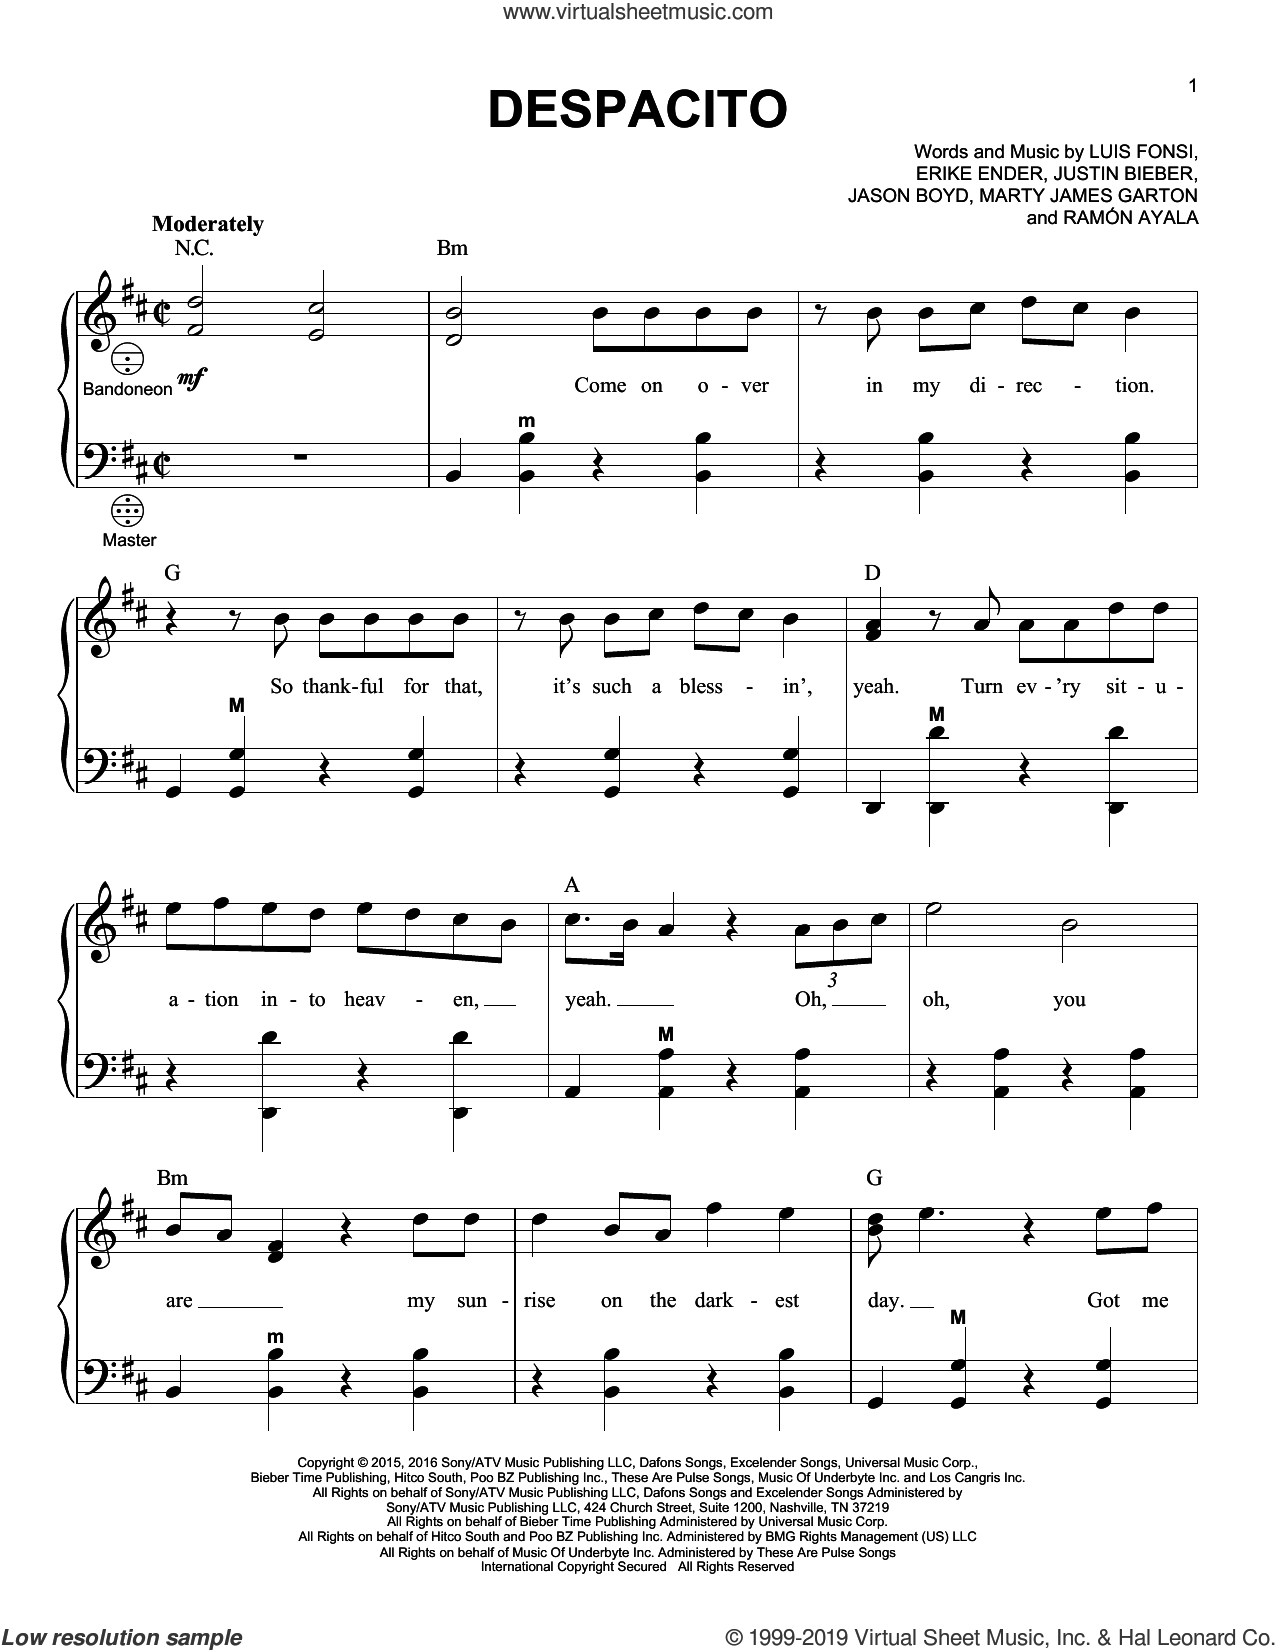 Despacito (feat. Justin Bieber) sheet music for accordion by Luis Fonsi & Daddy Yankee, Gary Meisner, Luis Fonsi & Daddy Yankee feat. Justin Bieber, Erika Ender, Luis Fonsi and Ramon Ayala, intermediate skill level